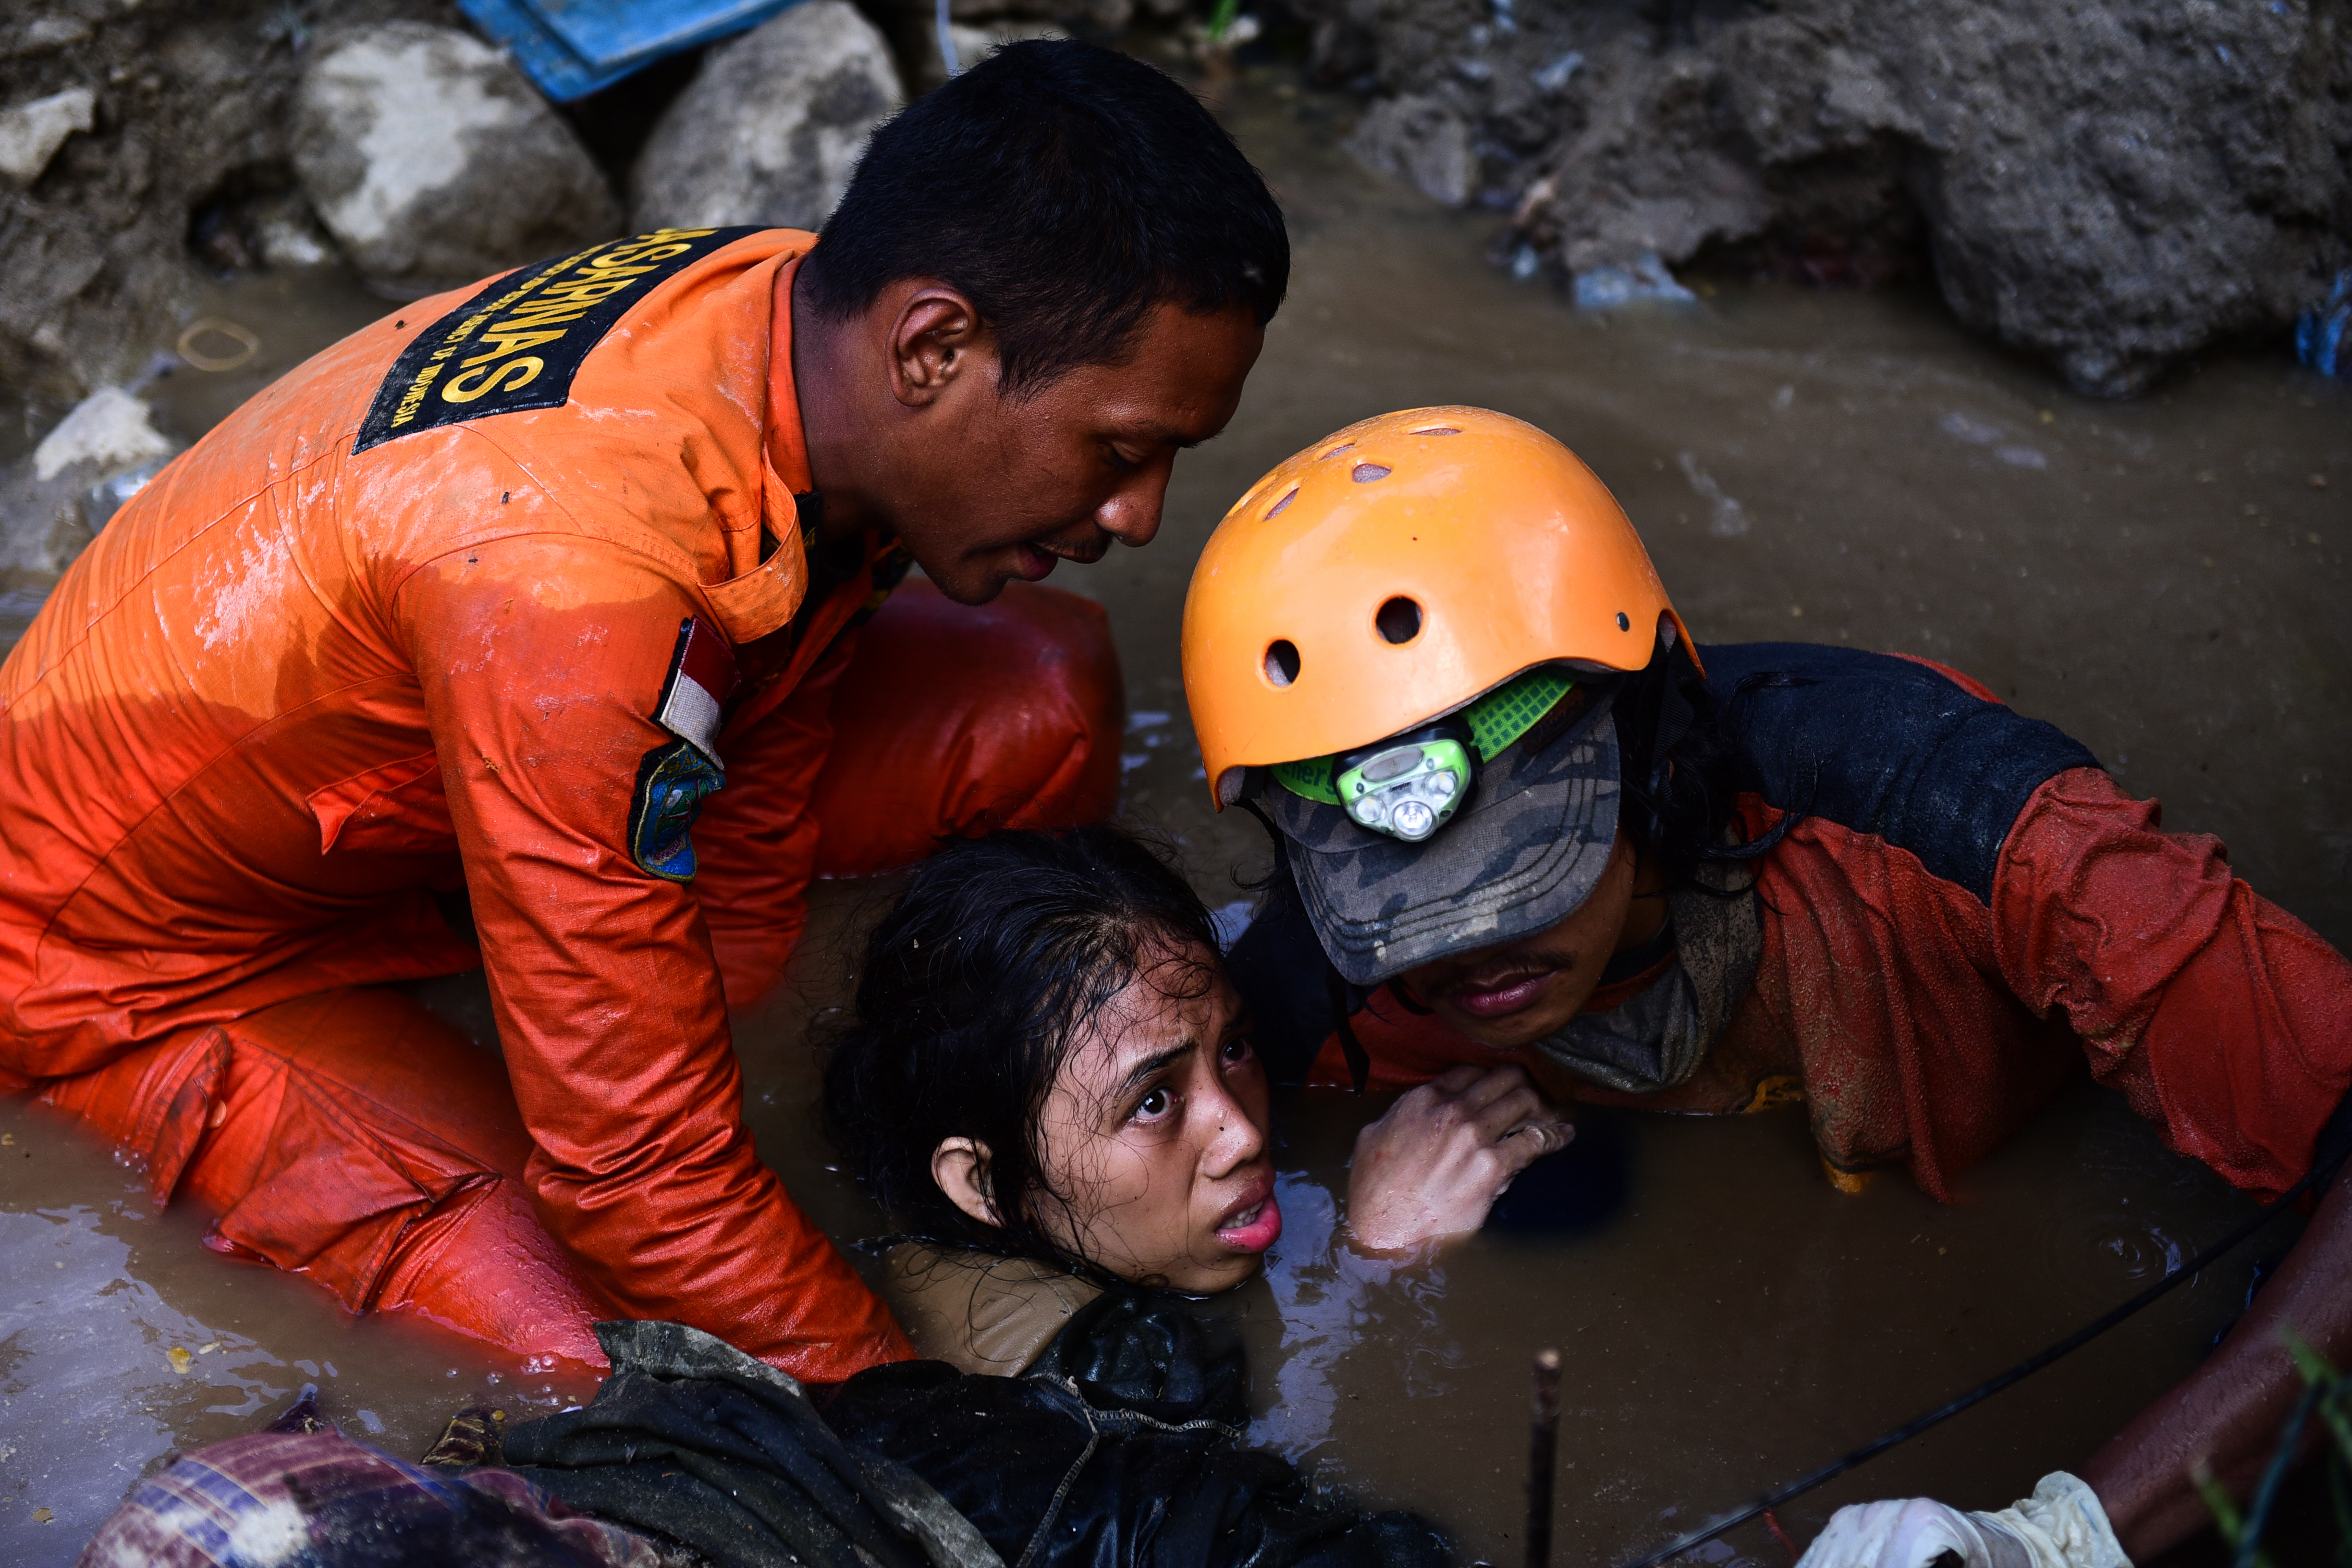 15-year-old Nurul Istikhoroh was finally rescued after almost 48 hours of being trapped, submerged in water, under what was left of her home after the earthquake and tsunami that struck Sulawesi on September 28, 2018. ©UNICEF/UN0239947/@Arimacswilander